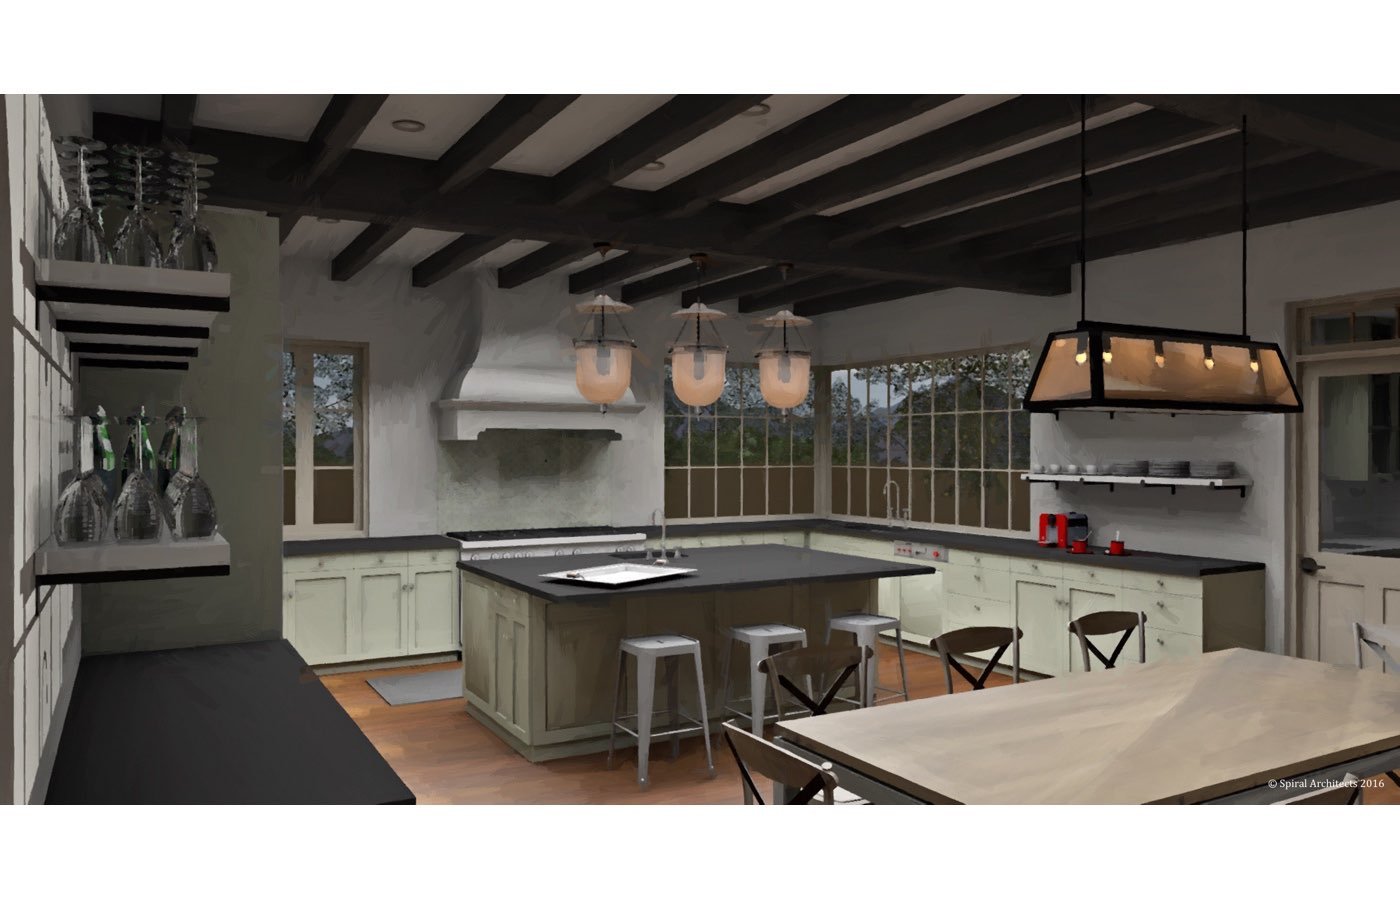 Silverleaf Scottsdale Luxury Custom Residence Spiral Architects Gene Kniaz Kitchen Rendering